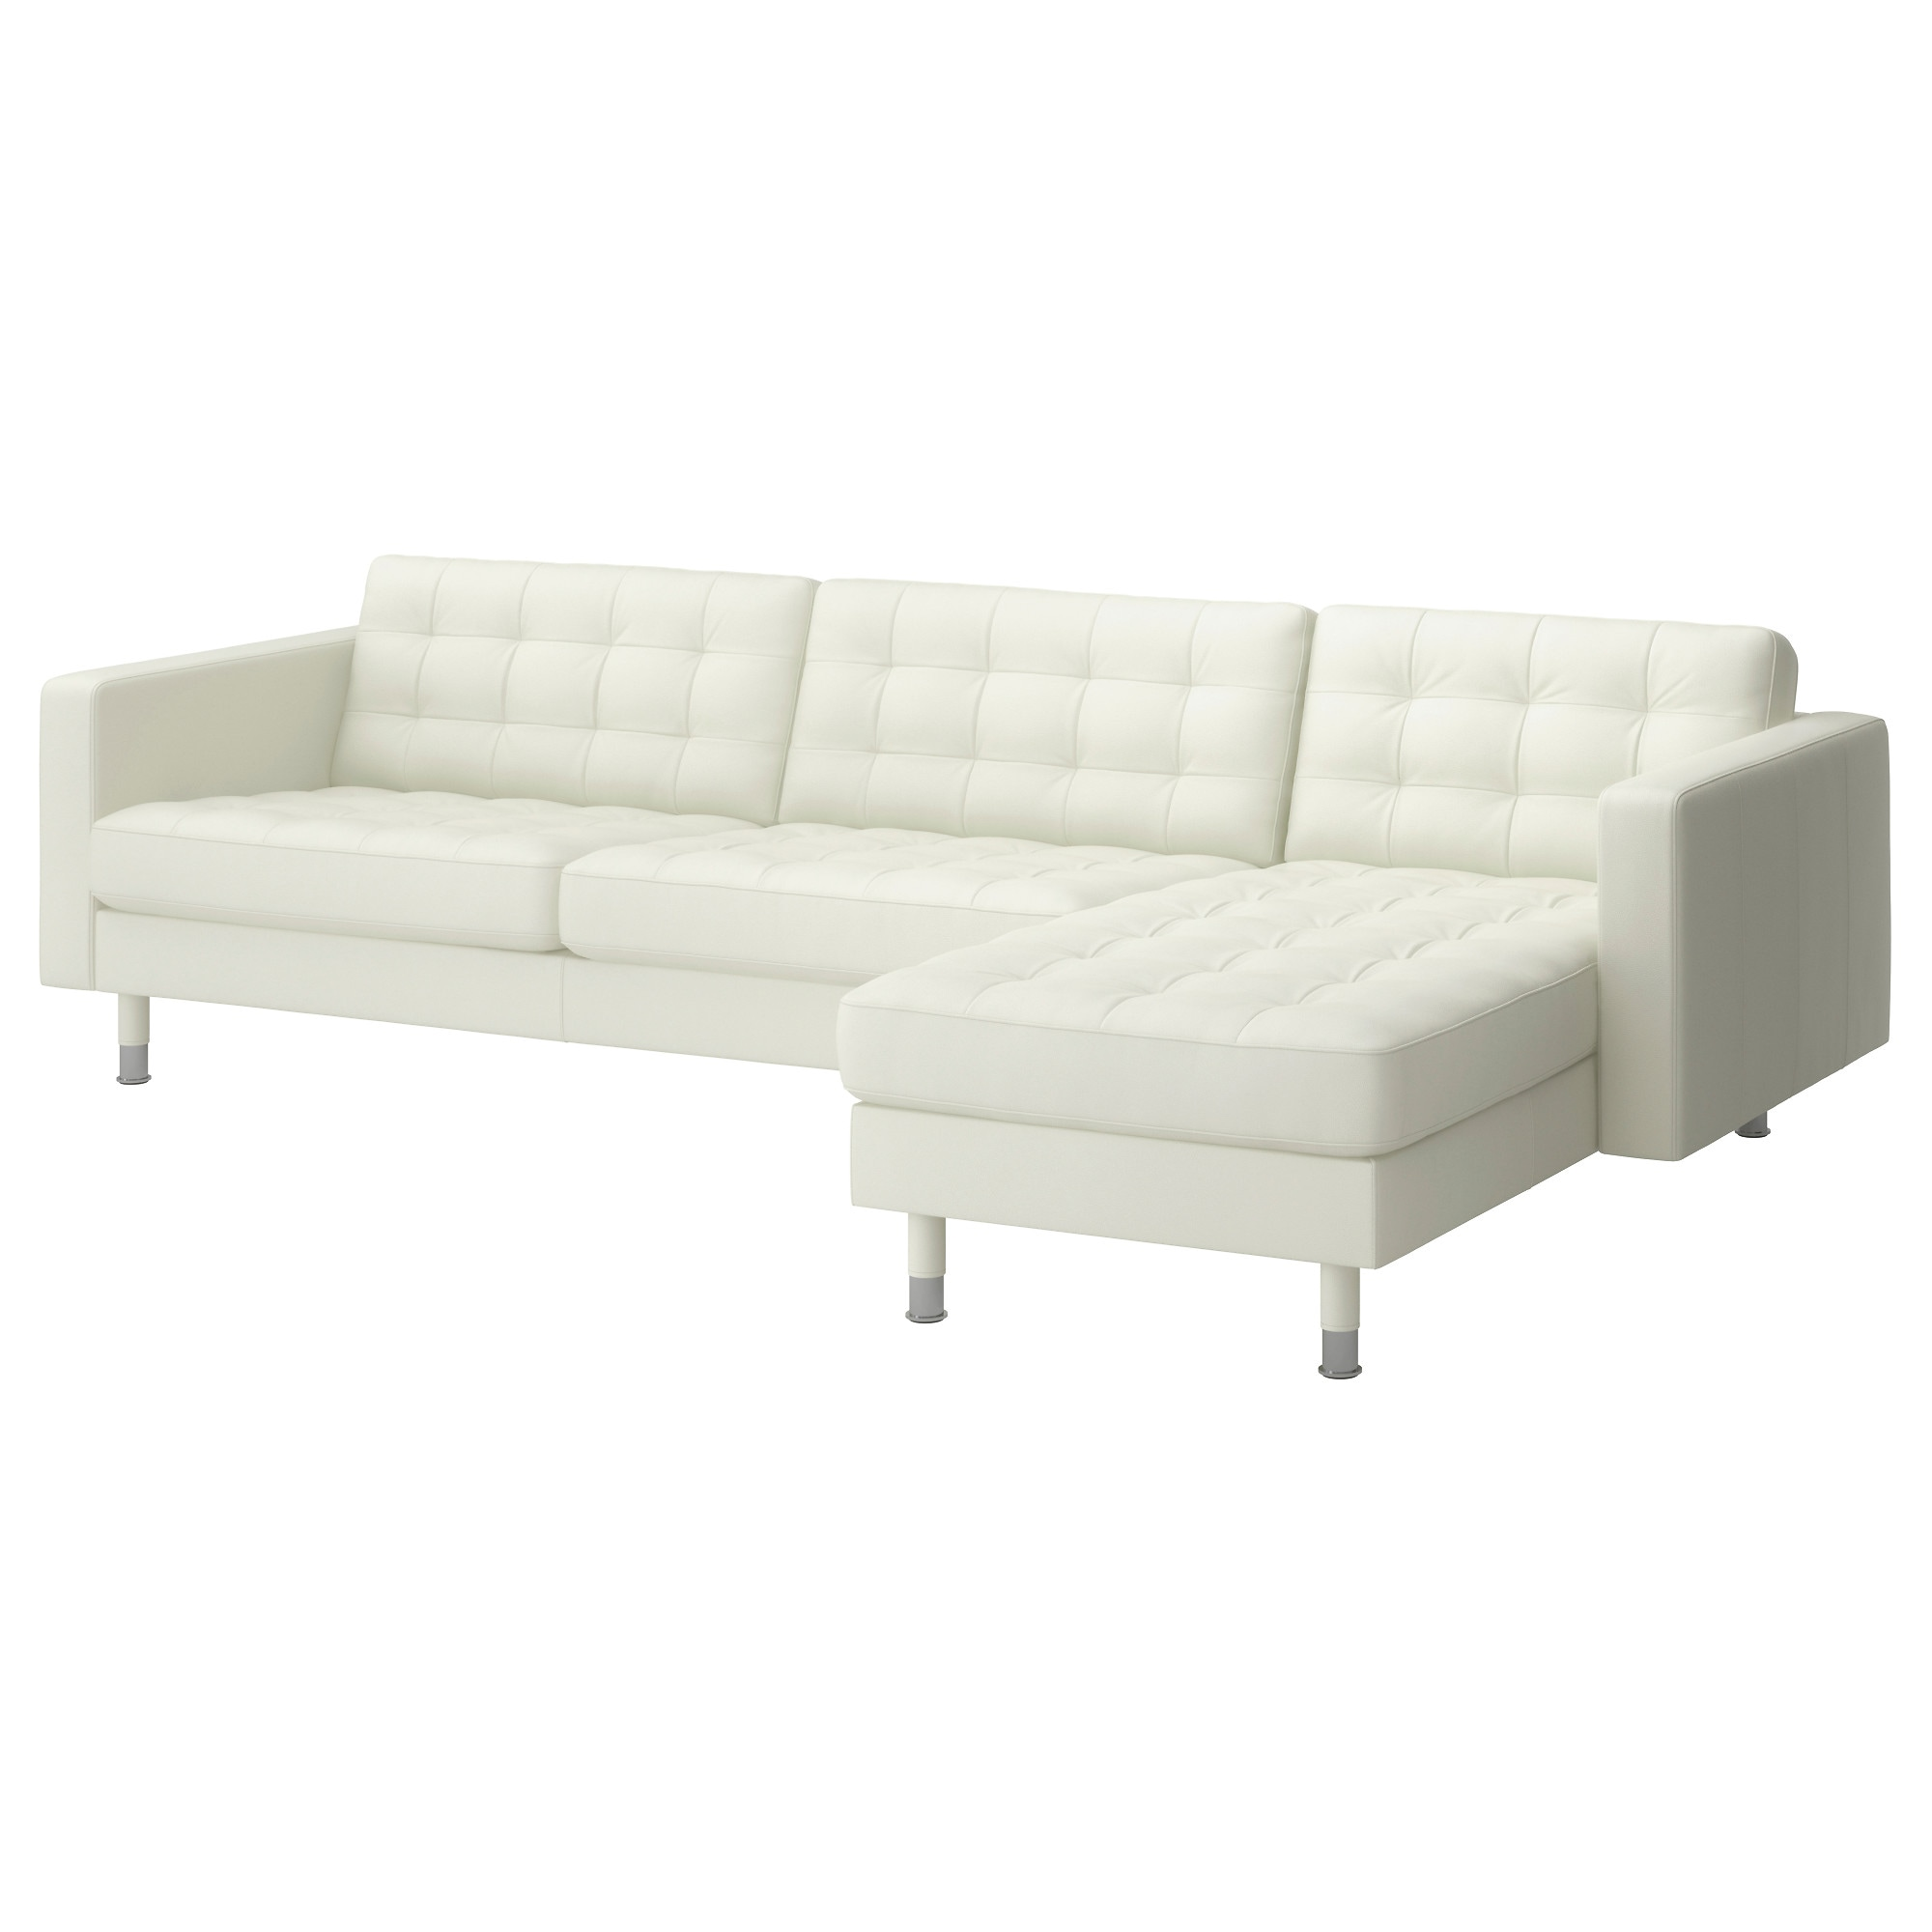 leather  faux leather couches chairs  ottomans  ikea - landskrona sectional seat grann bomstad whitemetal width